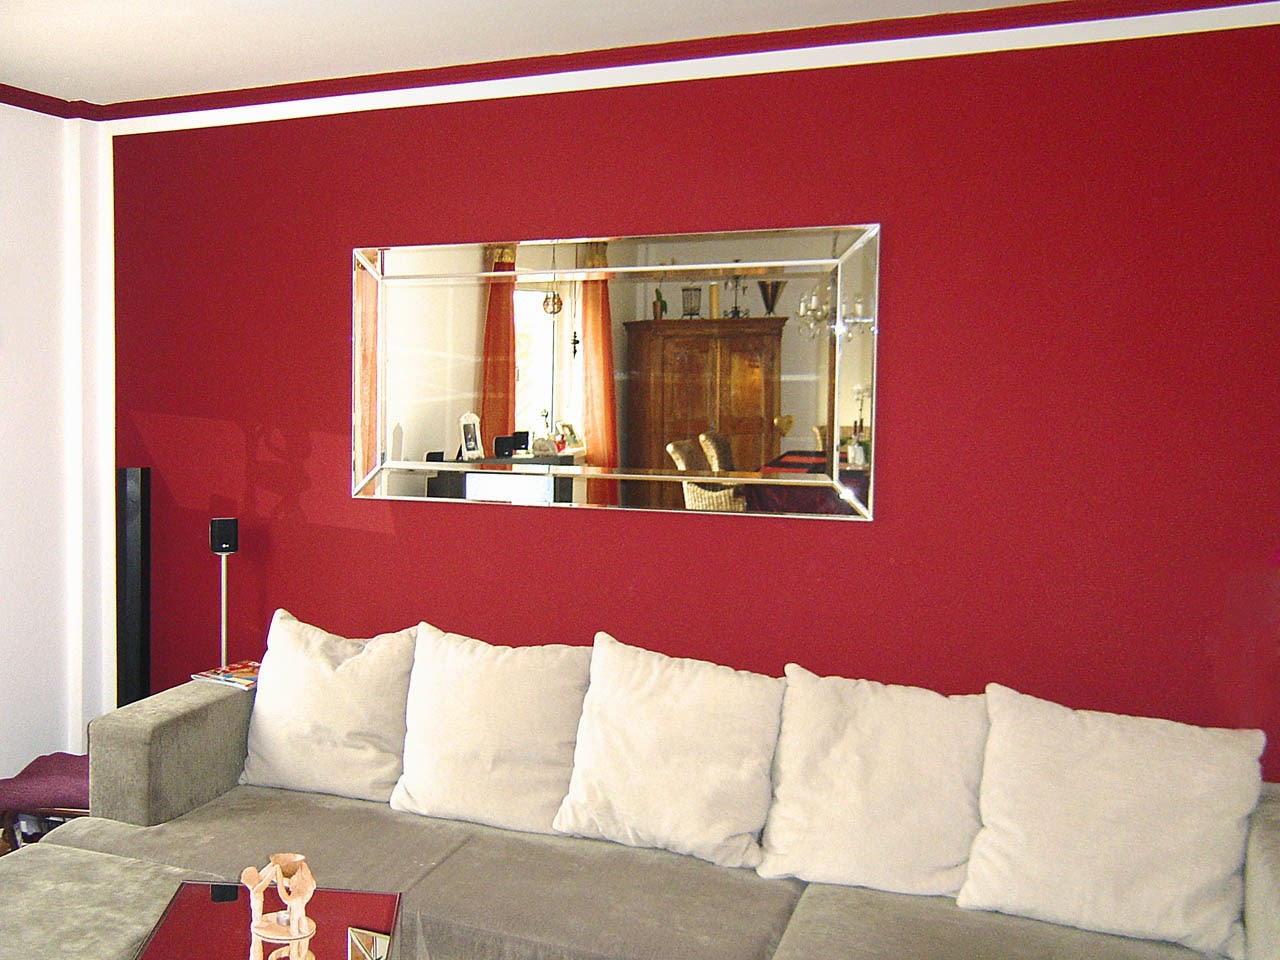 Decorilumina Ideas Sobre Decoracin de Paredes Interiores